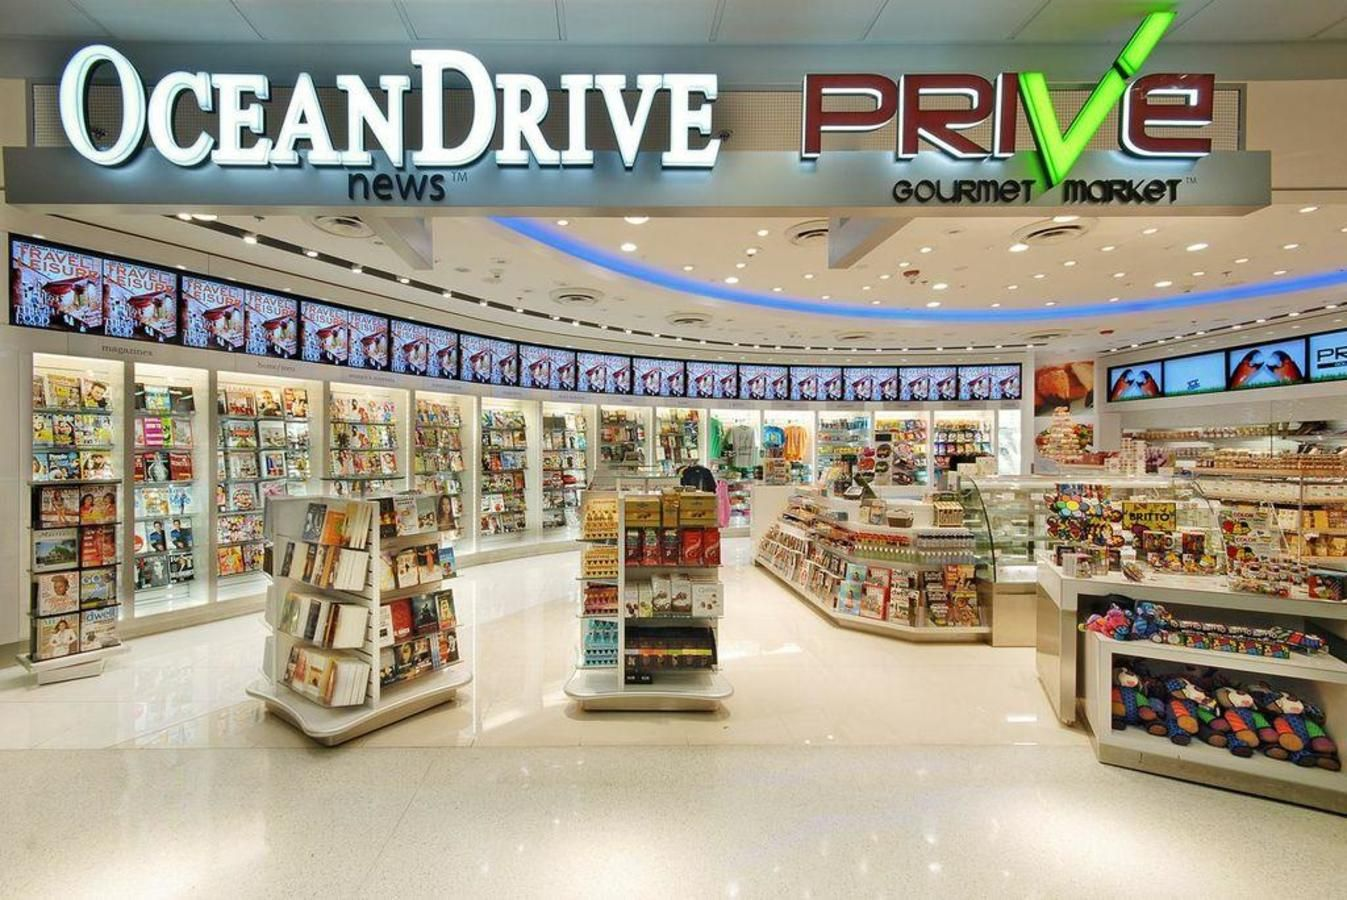 Ocean Drive News & Prive Gourmet Market MIA- North Terminal by Gate D-36